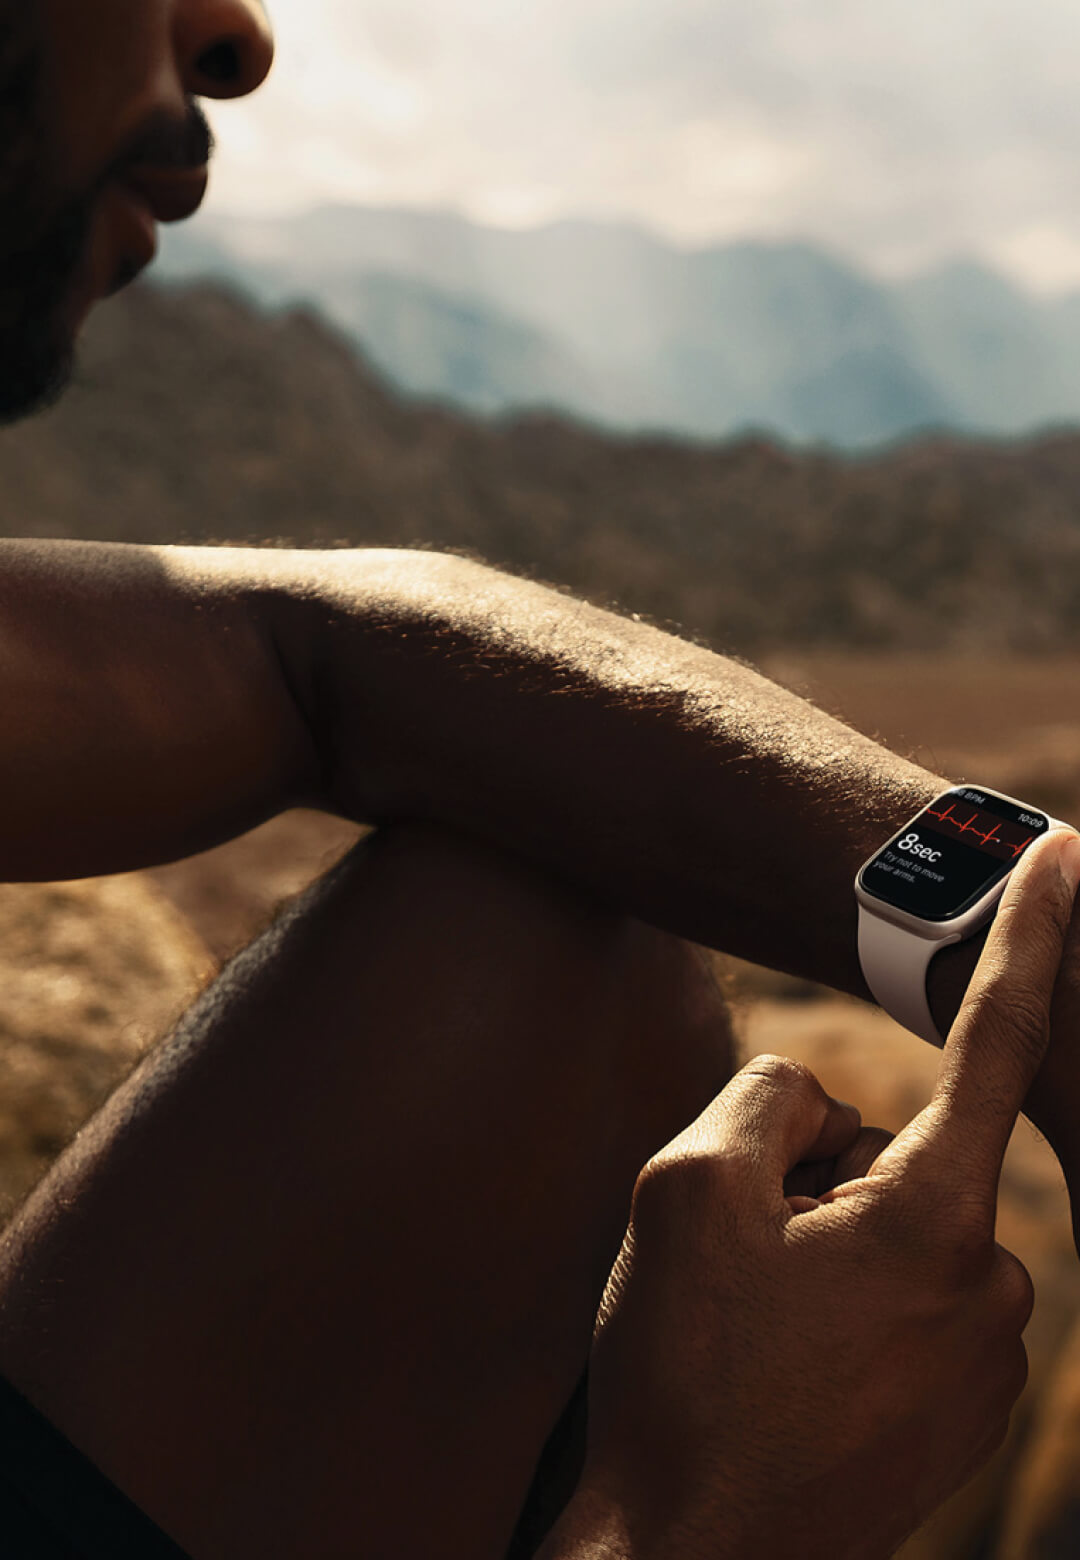 Apple unveiled the Apple Watch Series 7 during a digitally streamed event from the company's California headquarters | Apple Watch Series 7 | STIRworld